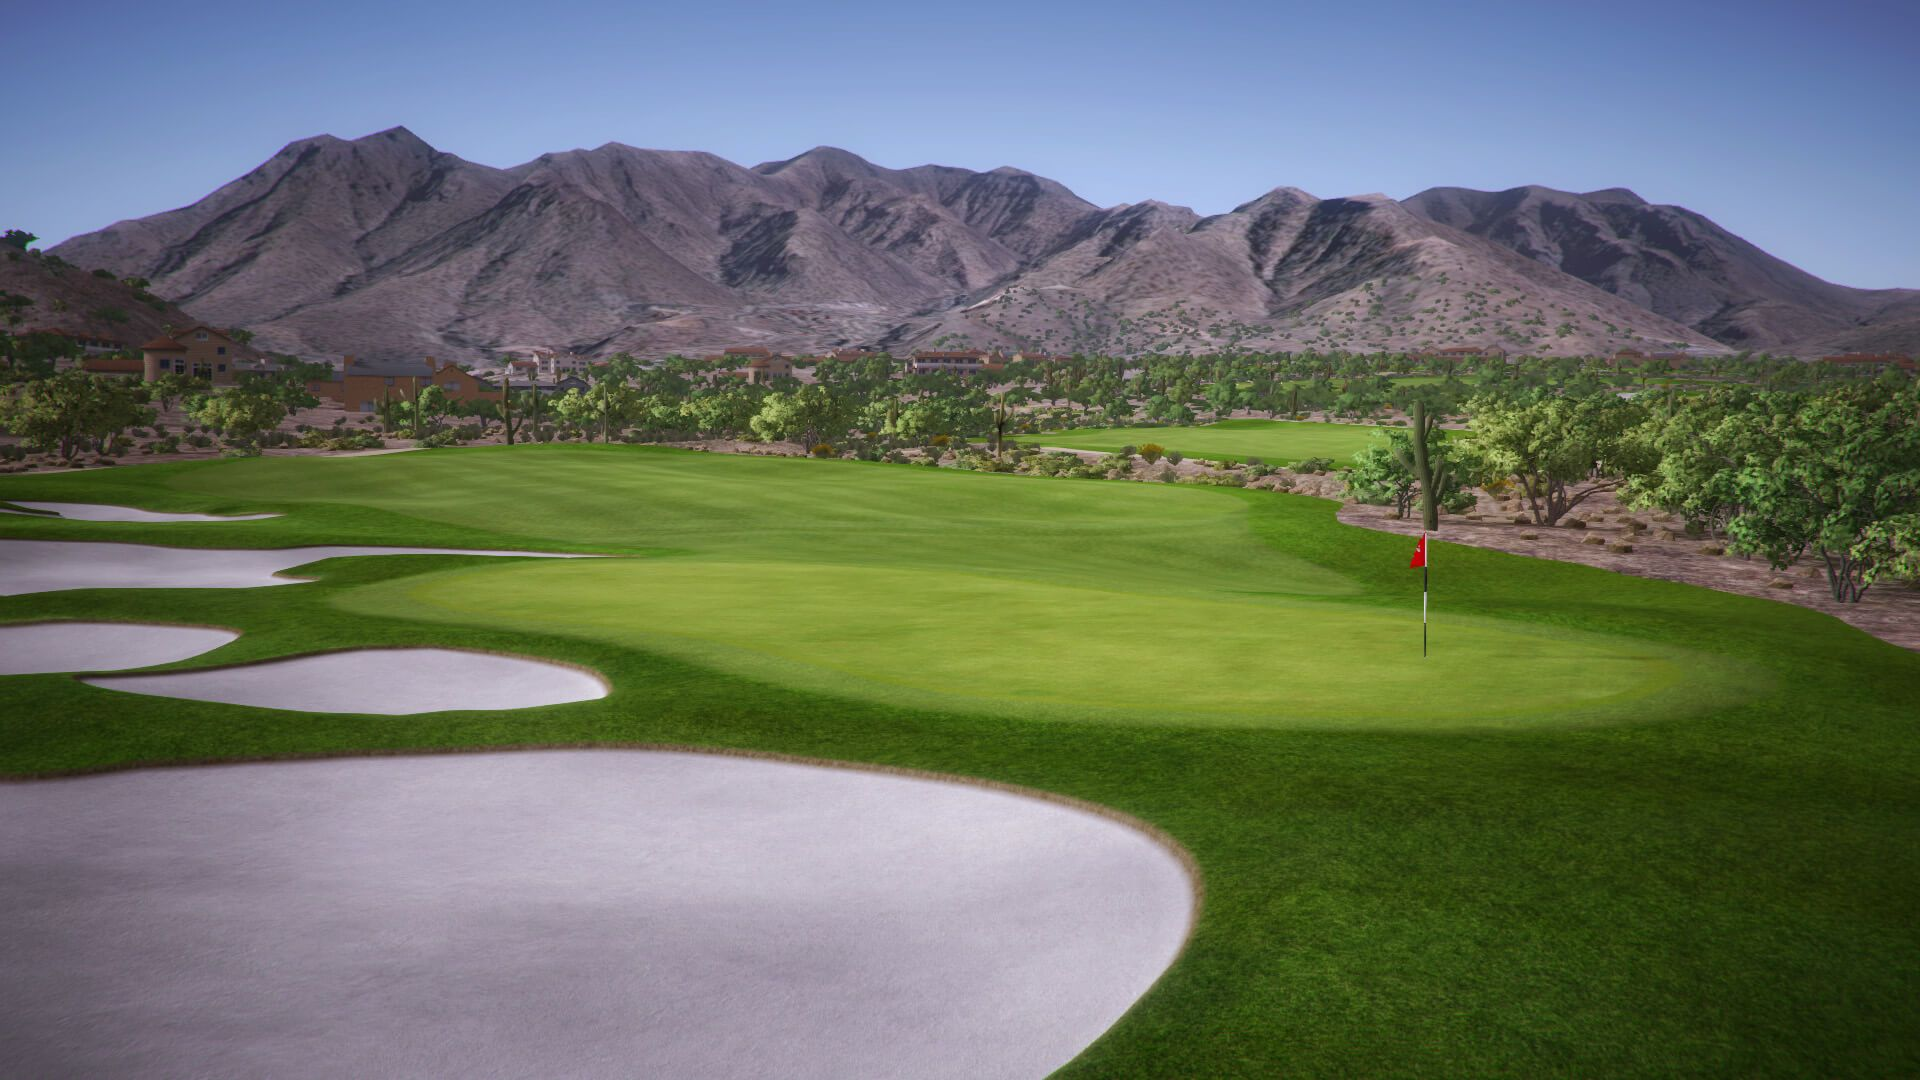 Play Practice And Teach 365 Days A Year Used By The Best Tour Players And Top Coaches Golf Simulators Golf Simulation